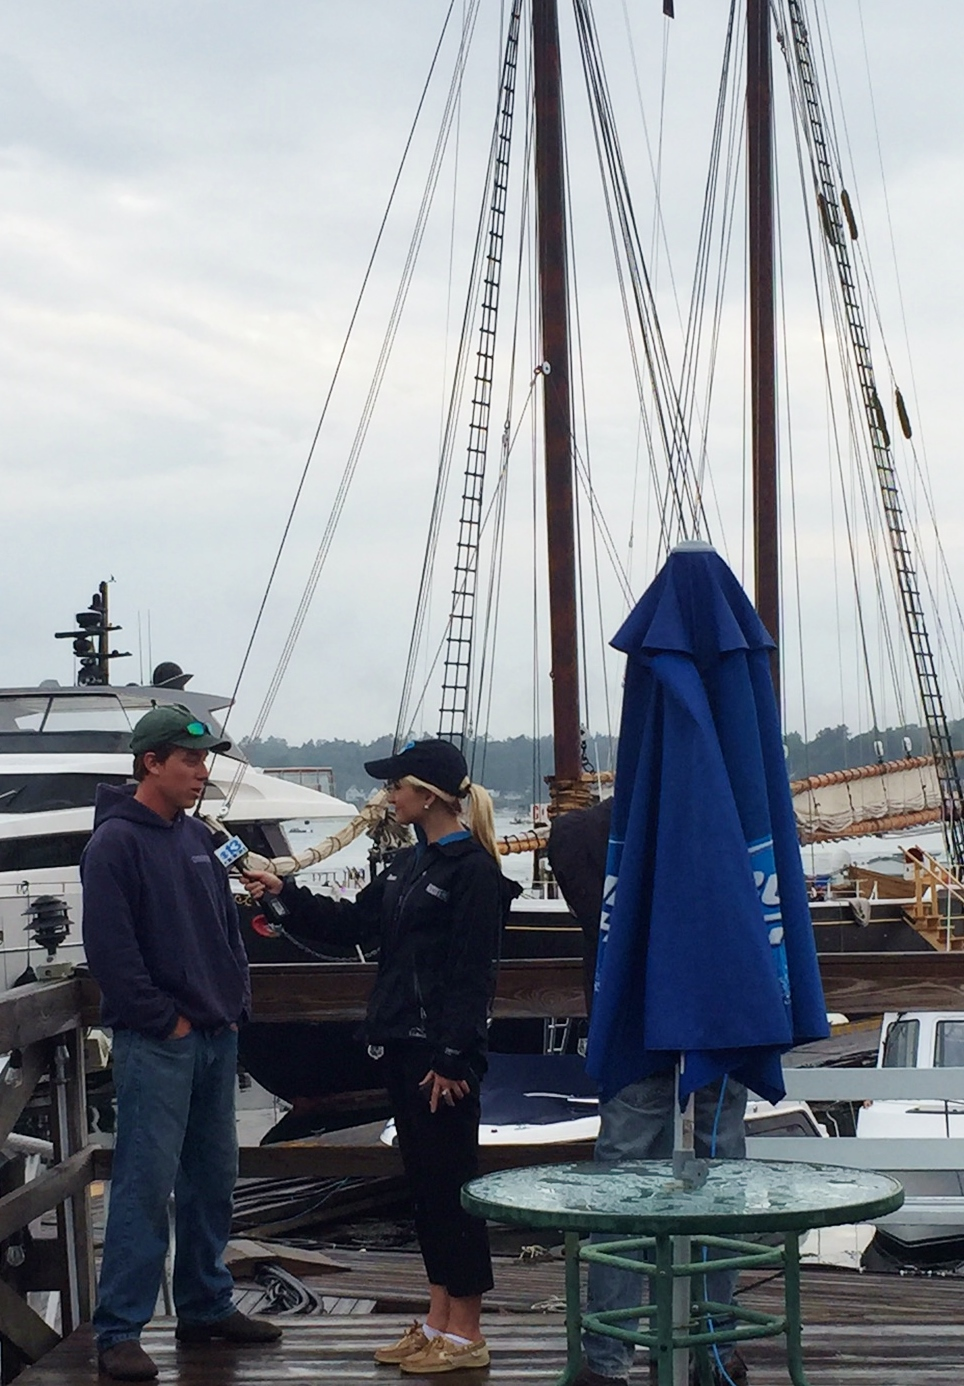 Interview with Captain Willy Leathers of the Schooner Adventure